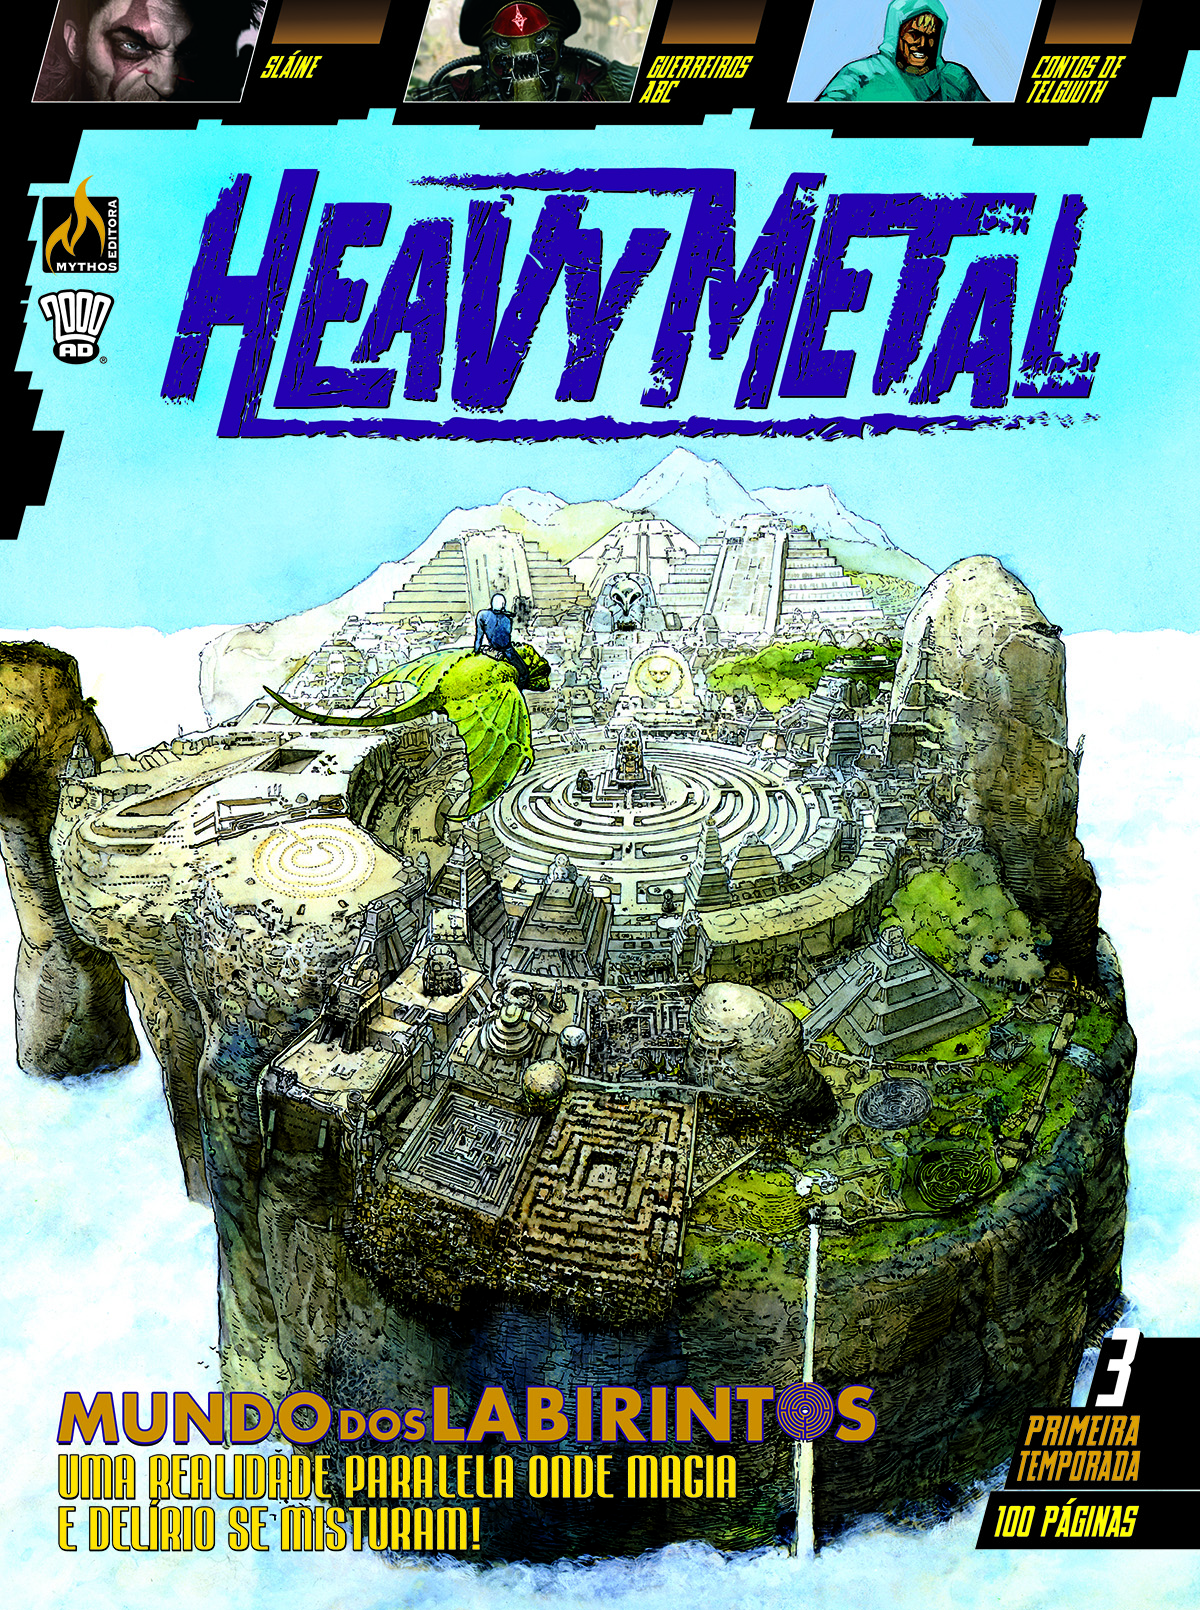 HEAVY METAL 1ª TEMPORADA - EPISÓDIO 3